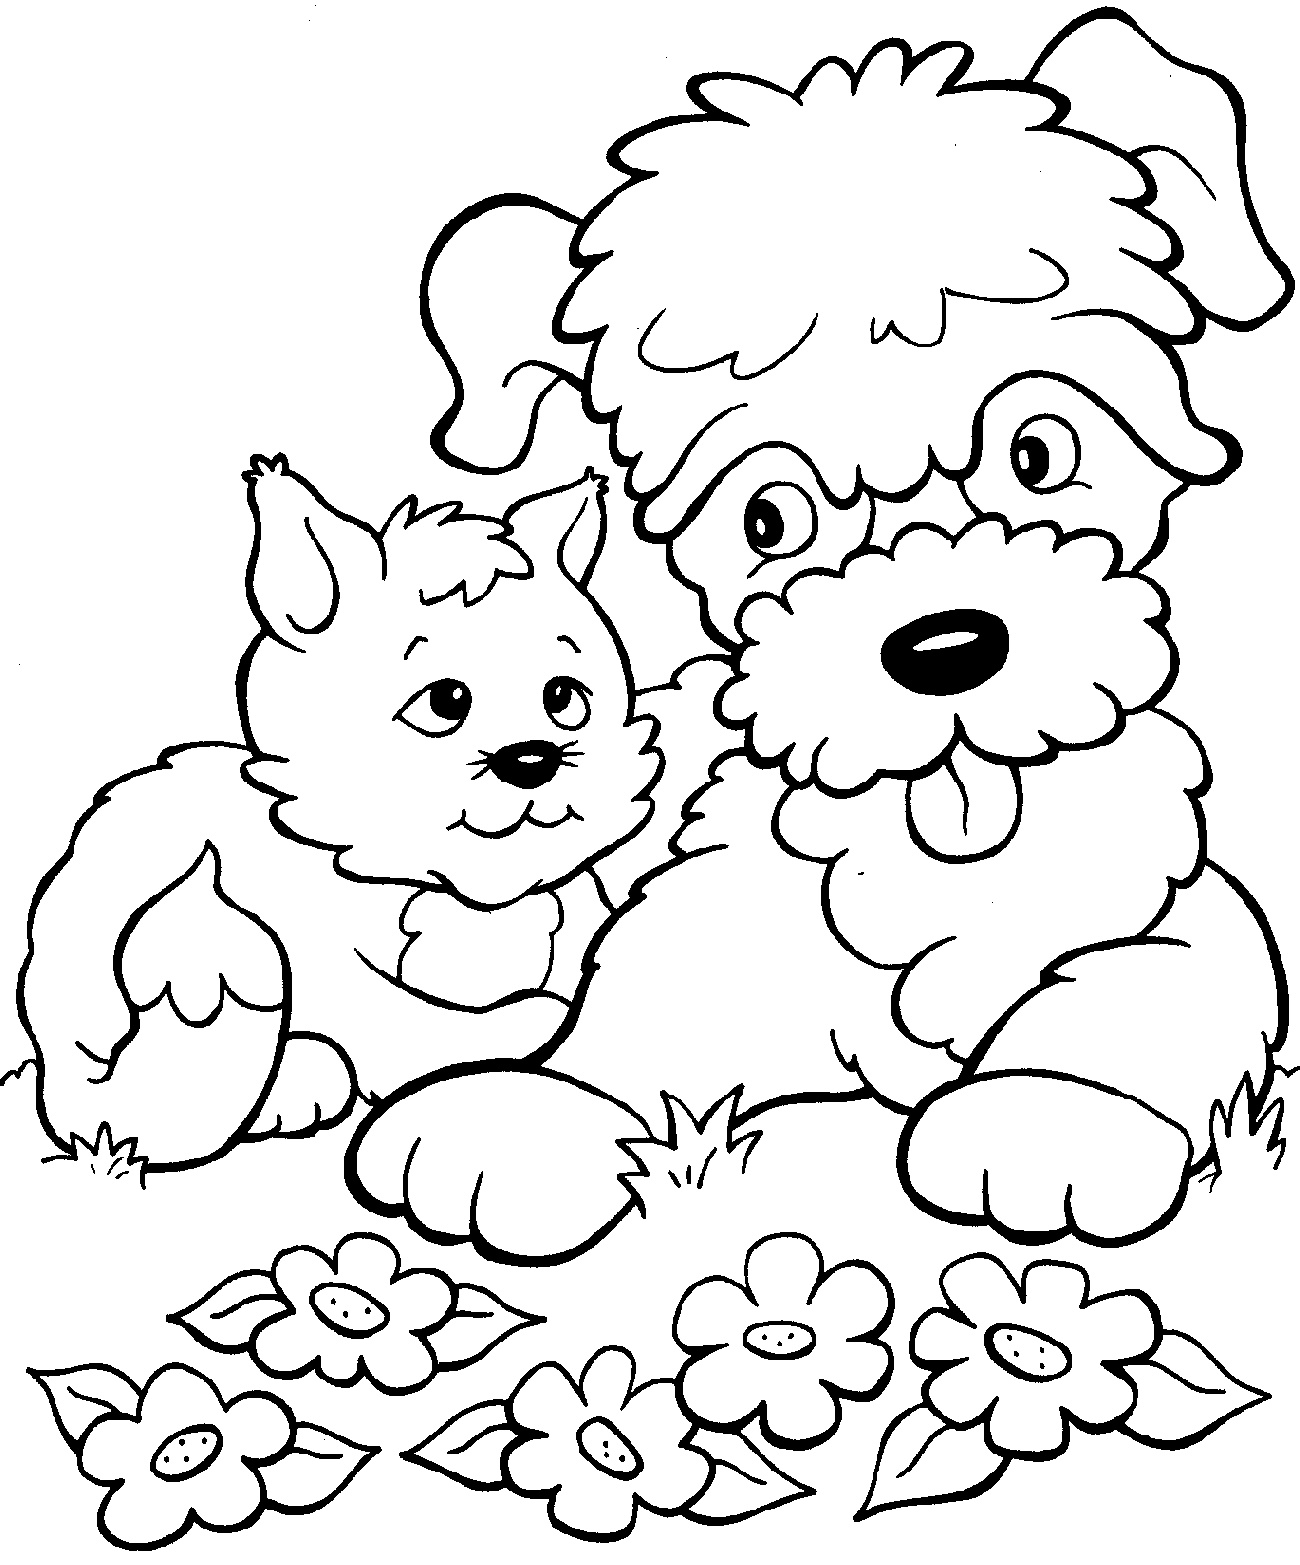 Puppy And Kitten Coloring Pages For Kids